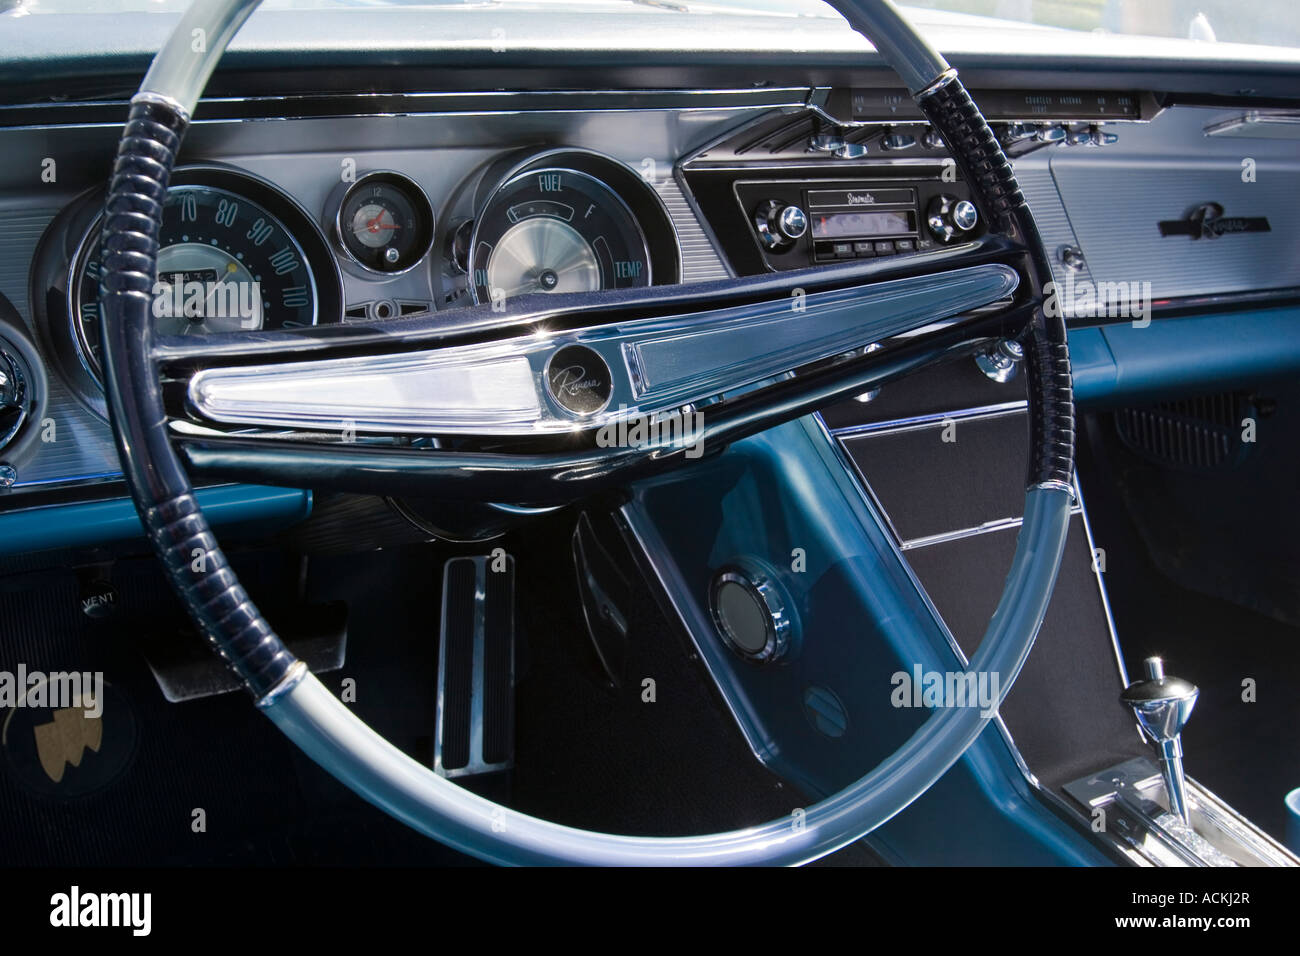 Dashboard Car Blue Stock Photos Dashboard Car Blue Stock Images - Car image sign of dashboardcar dashboard icons stock photospictures royalty free car